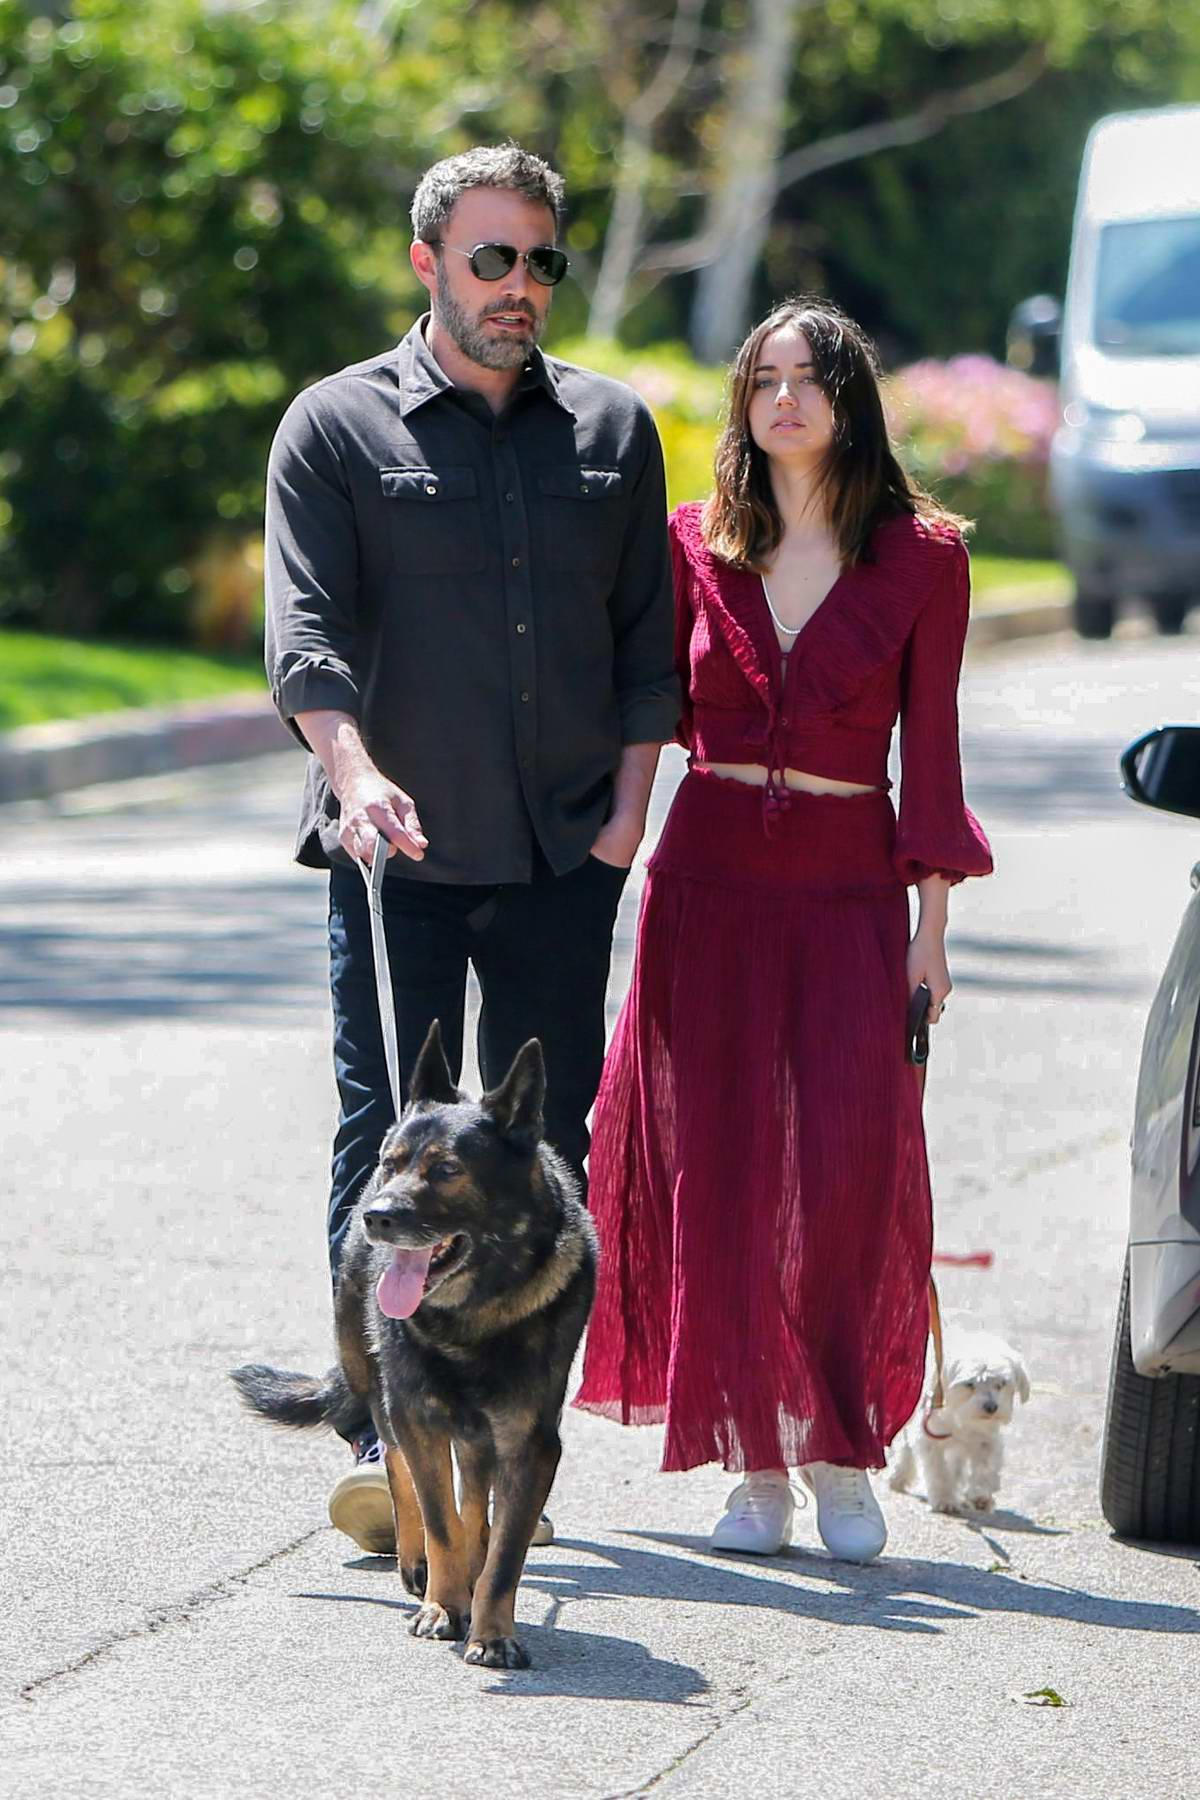 Ana de Armas and Ben Affleck hold hands as they take their dogs for a walk in Los Angeles